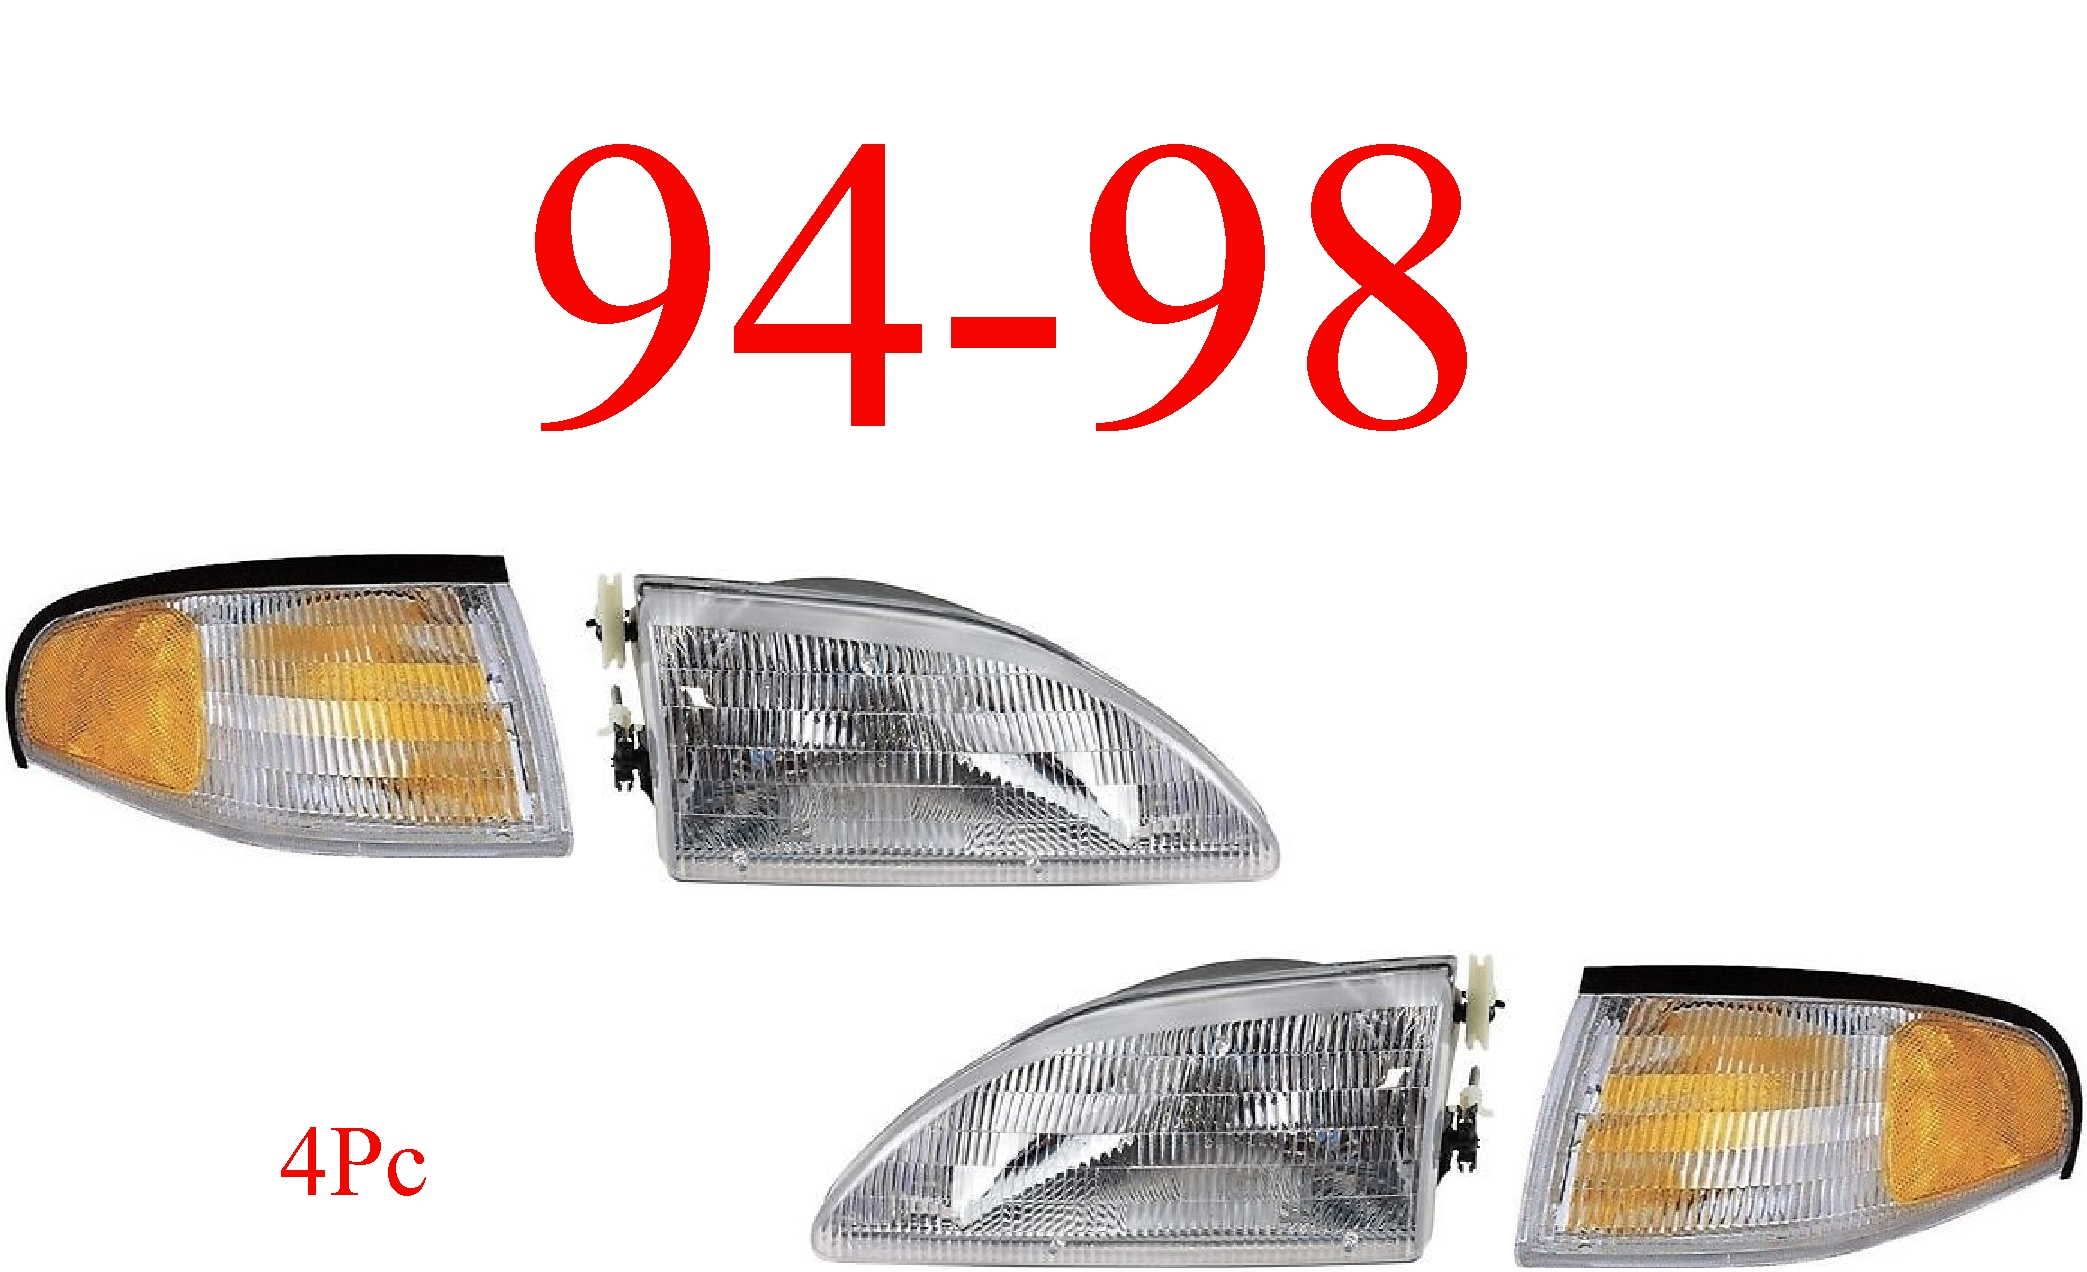 94-98 Mustang 4Pc Head Light & Park Light Kit